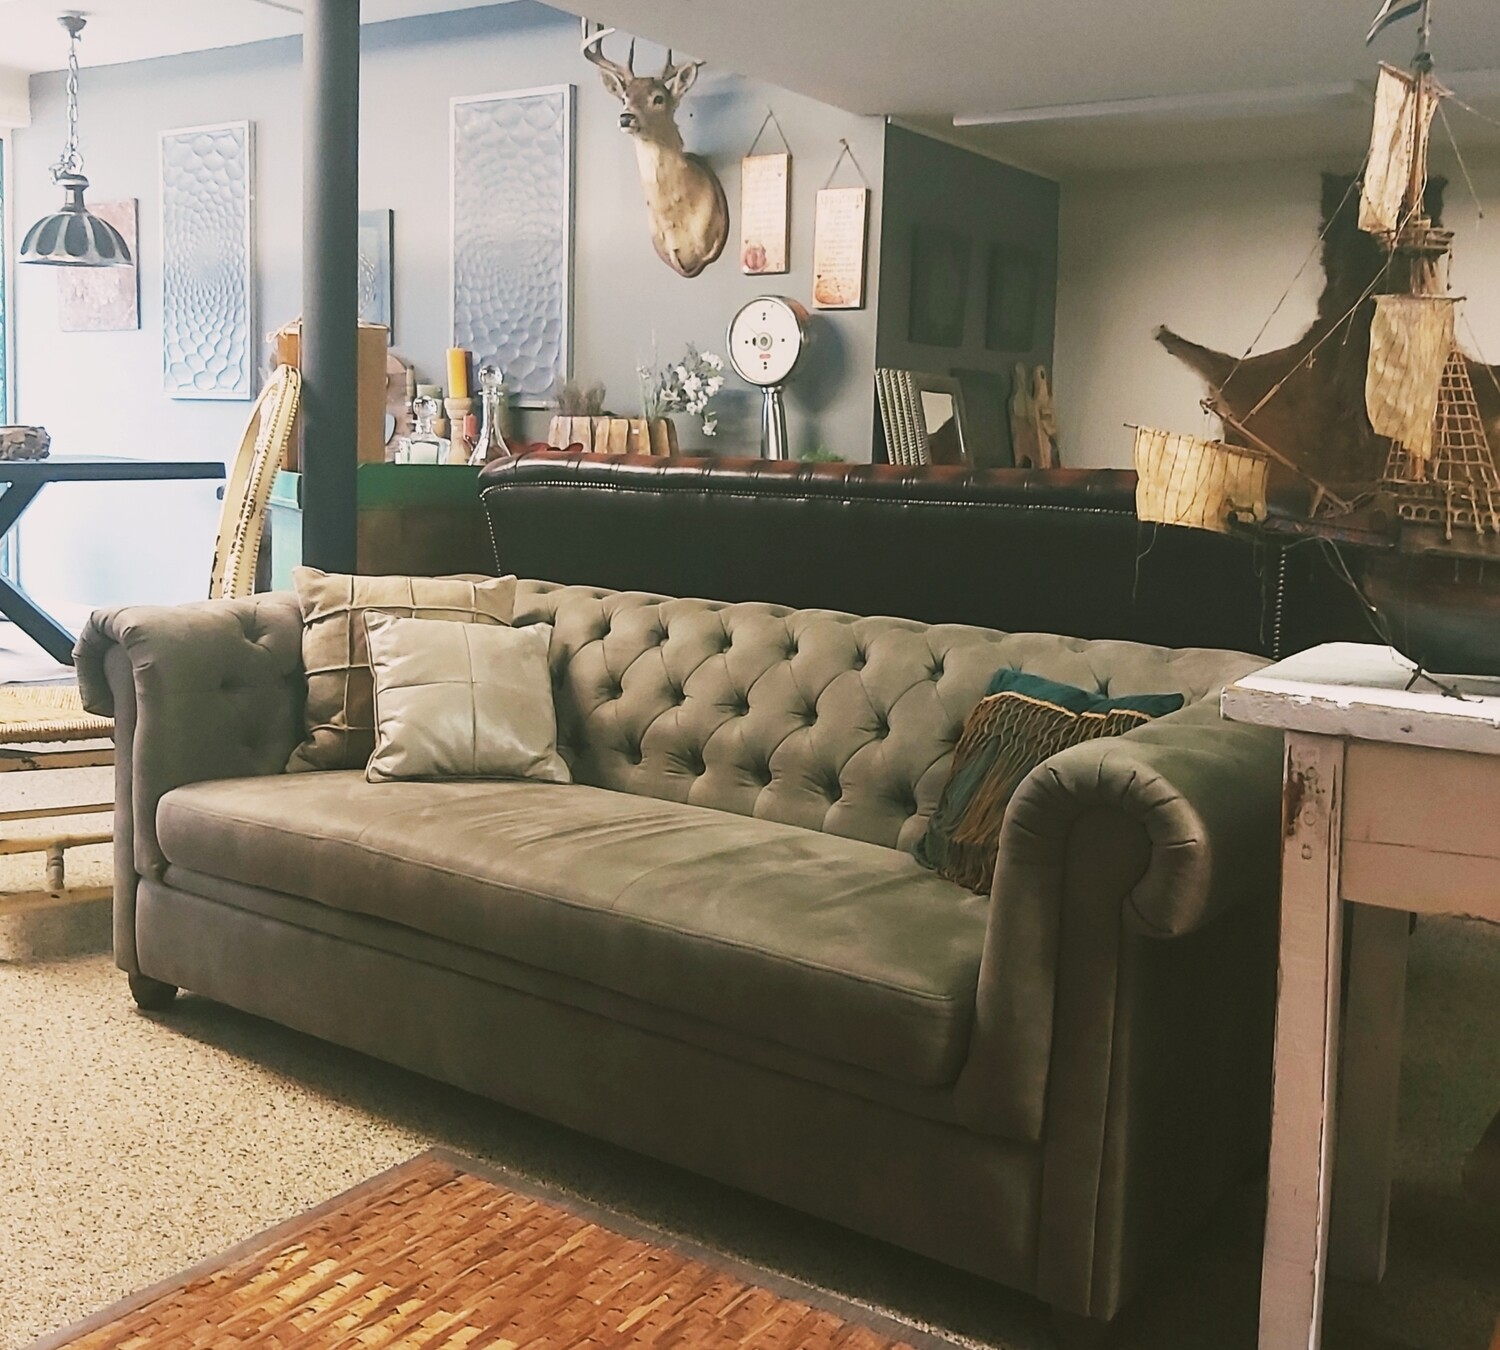 Taupe-colored, Suede-look sofa